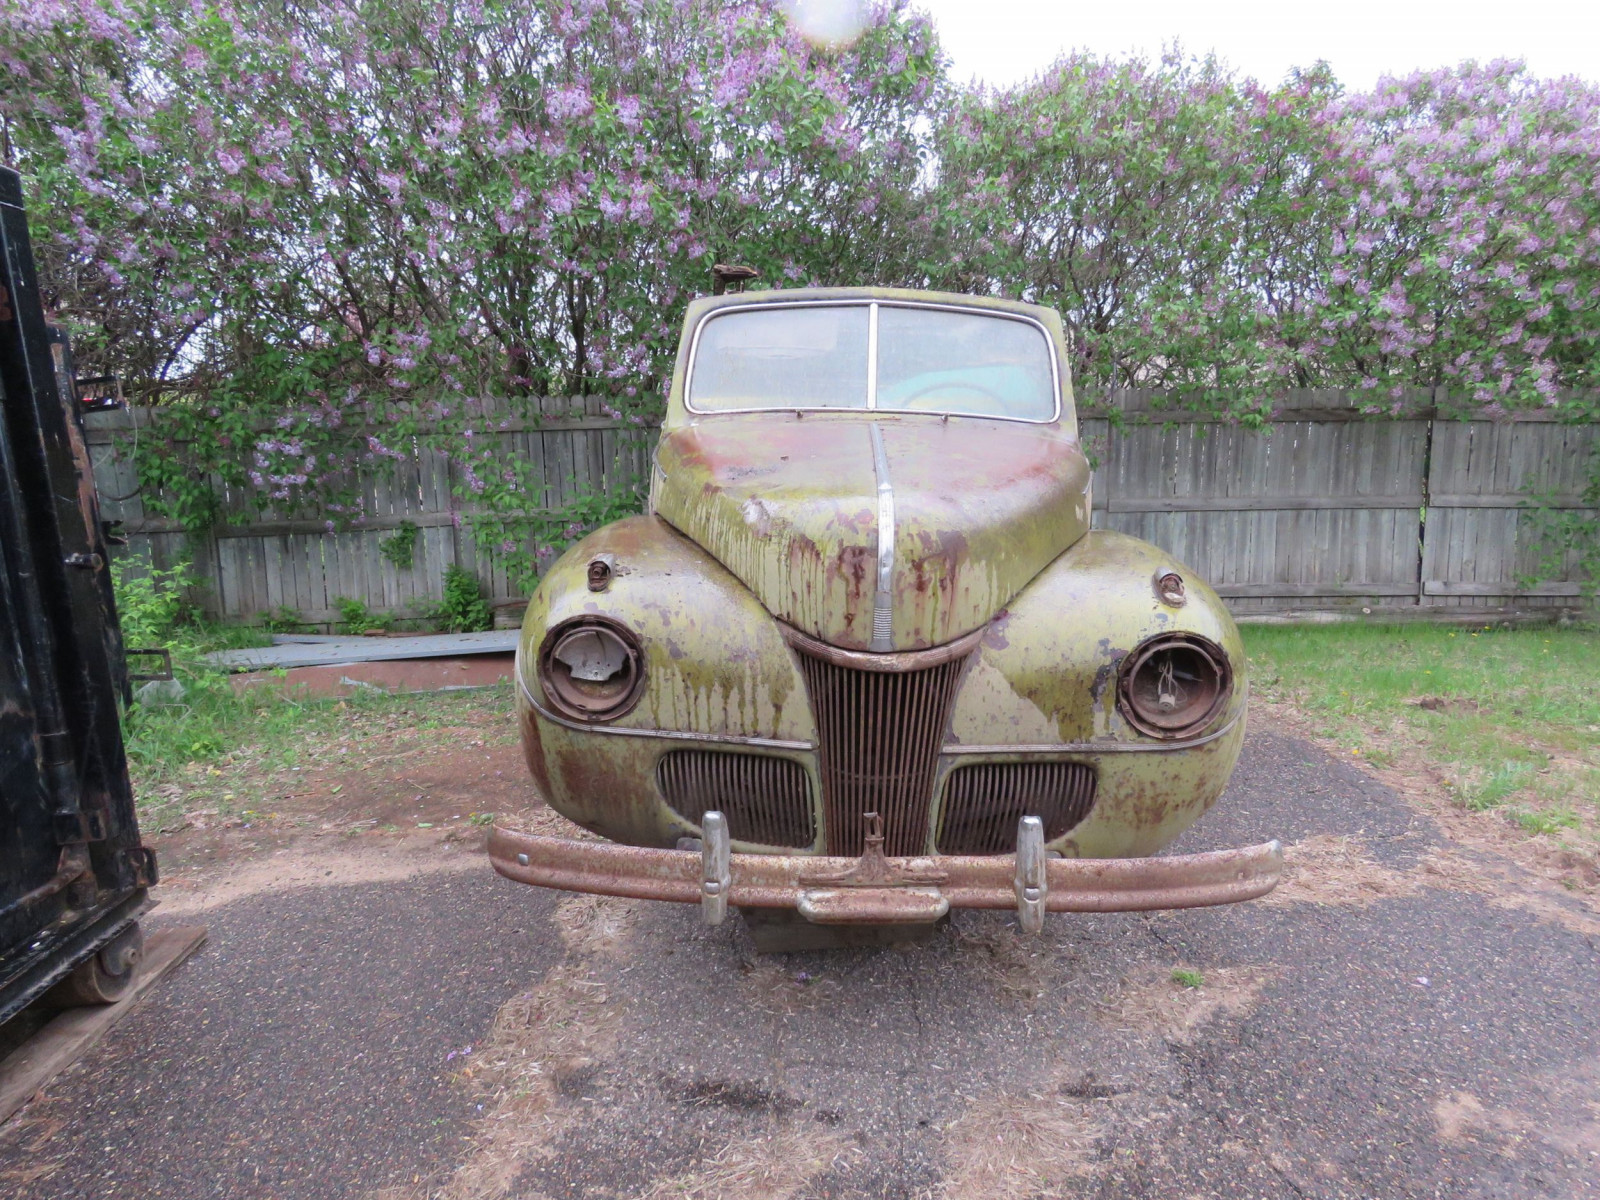 1941 Ford convertible Body for Rod or Restore - Image 1